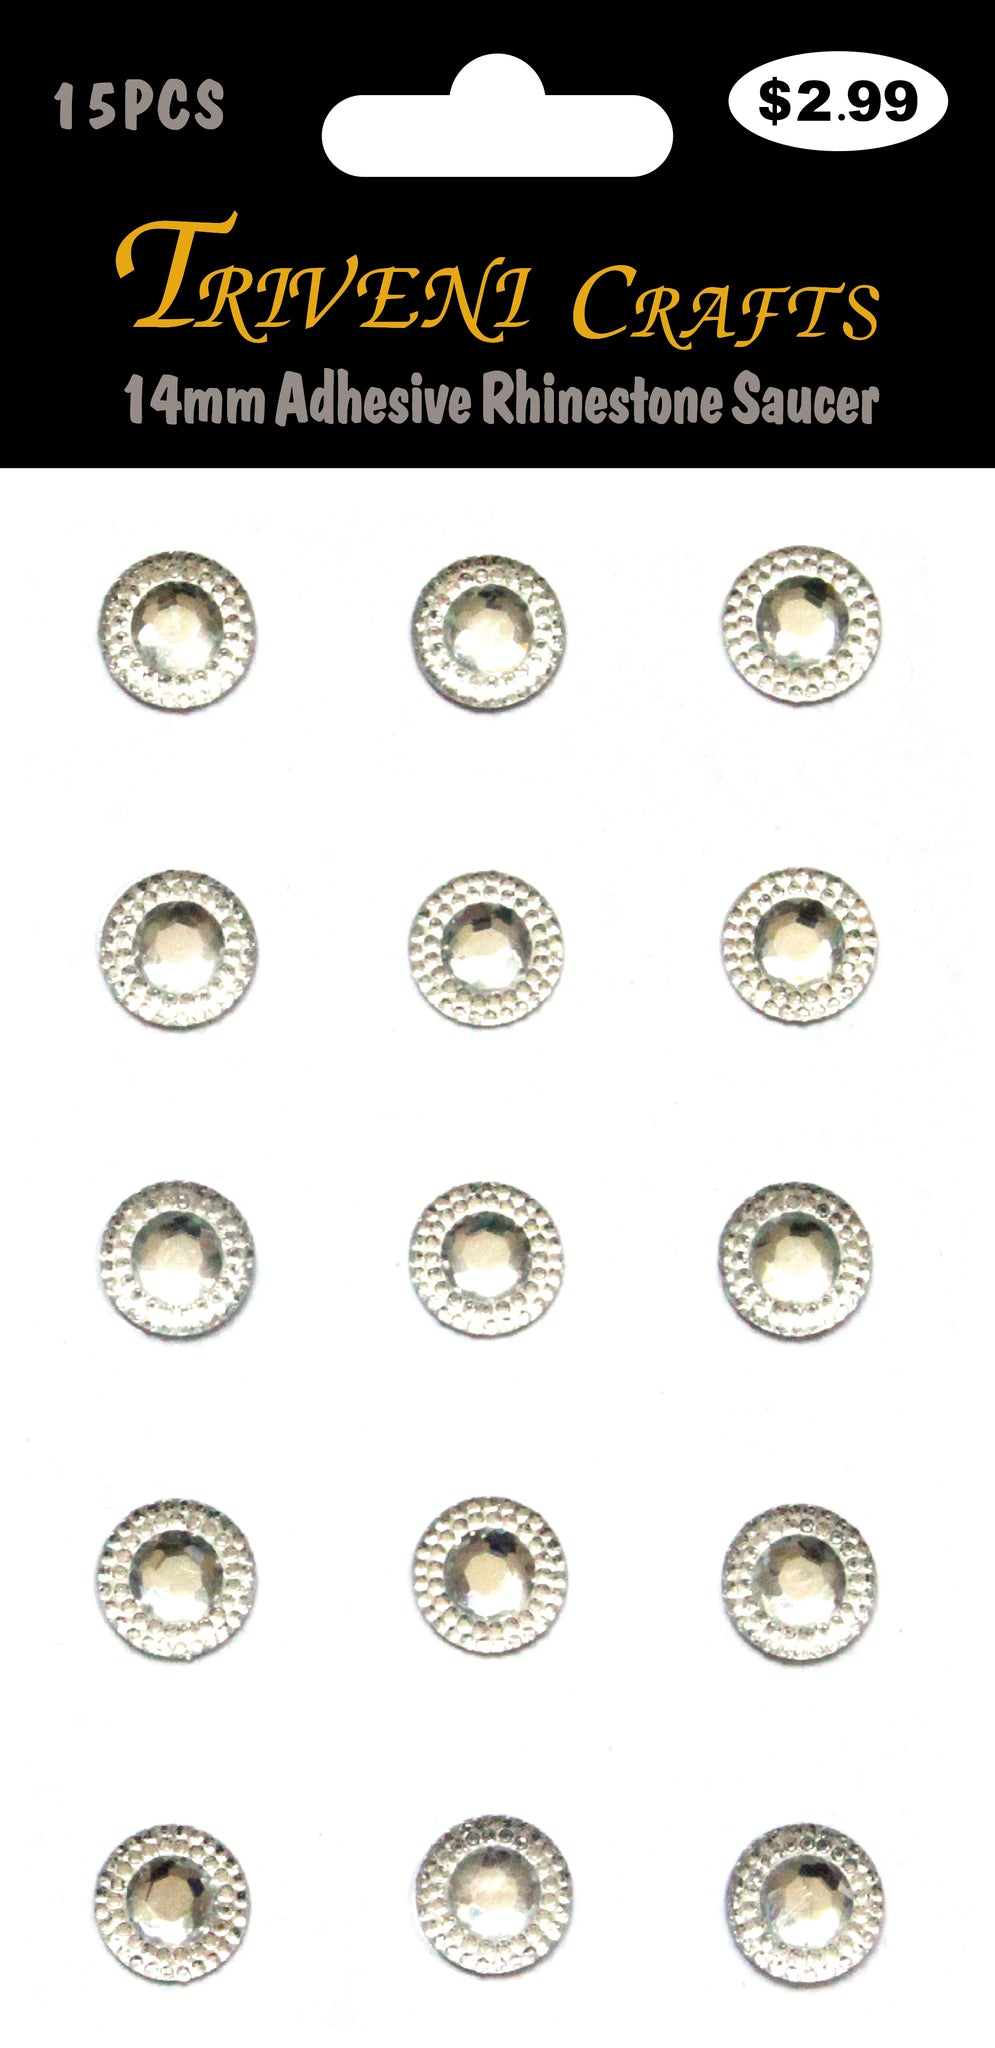 14mm Adhesive Rhinestone Saucer - Clear